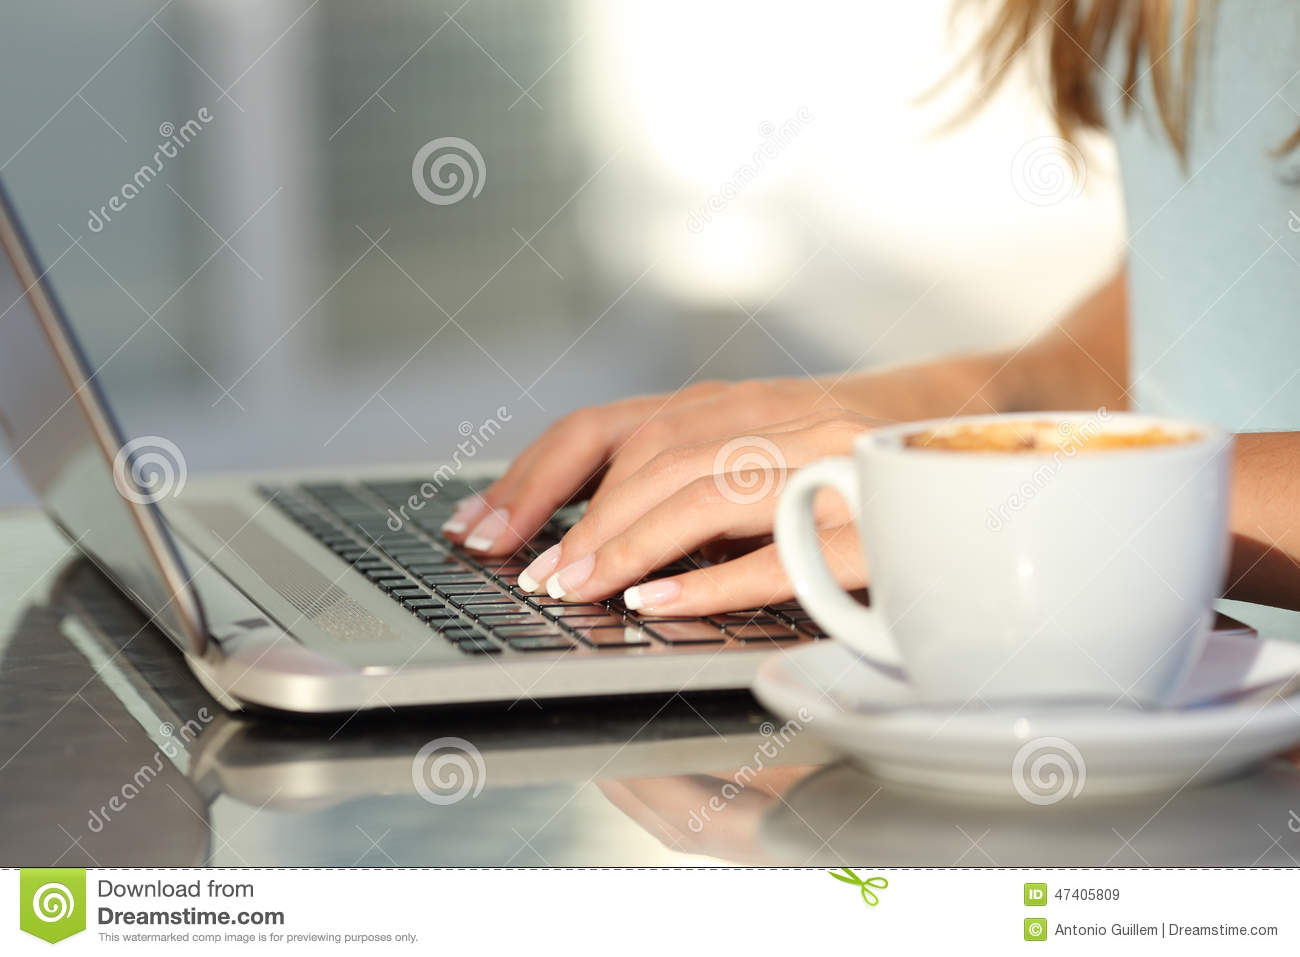 Download Woman Hands Typing In A Laptop In A Coffee Shop Stock Image - Image of background, girl: 47405809